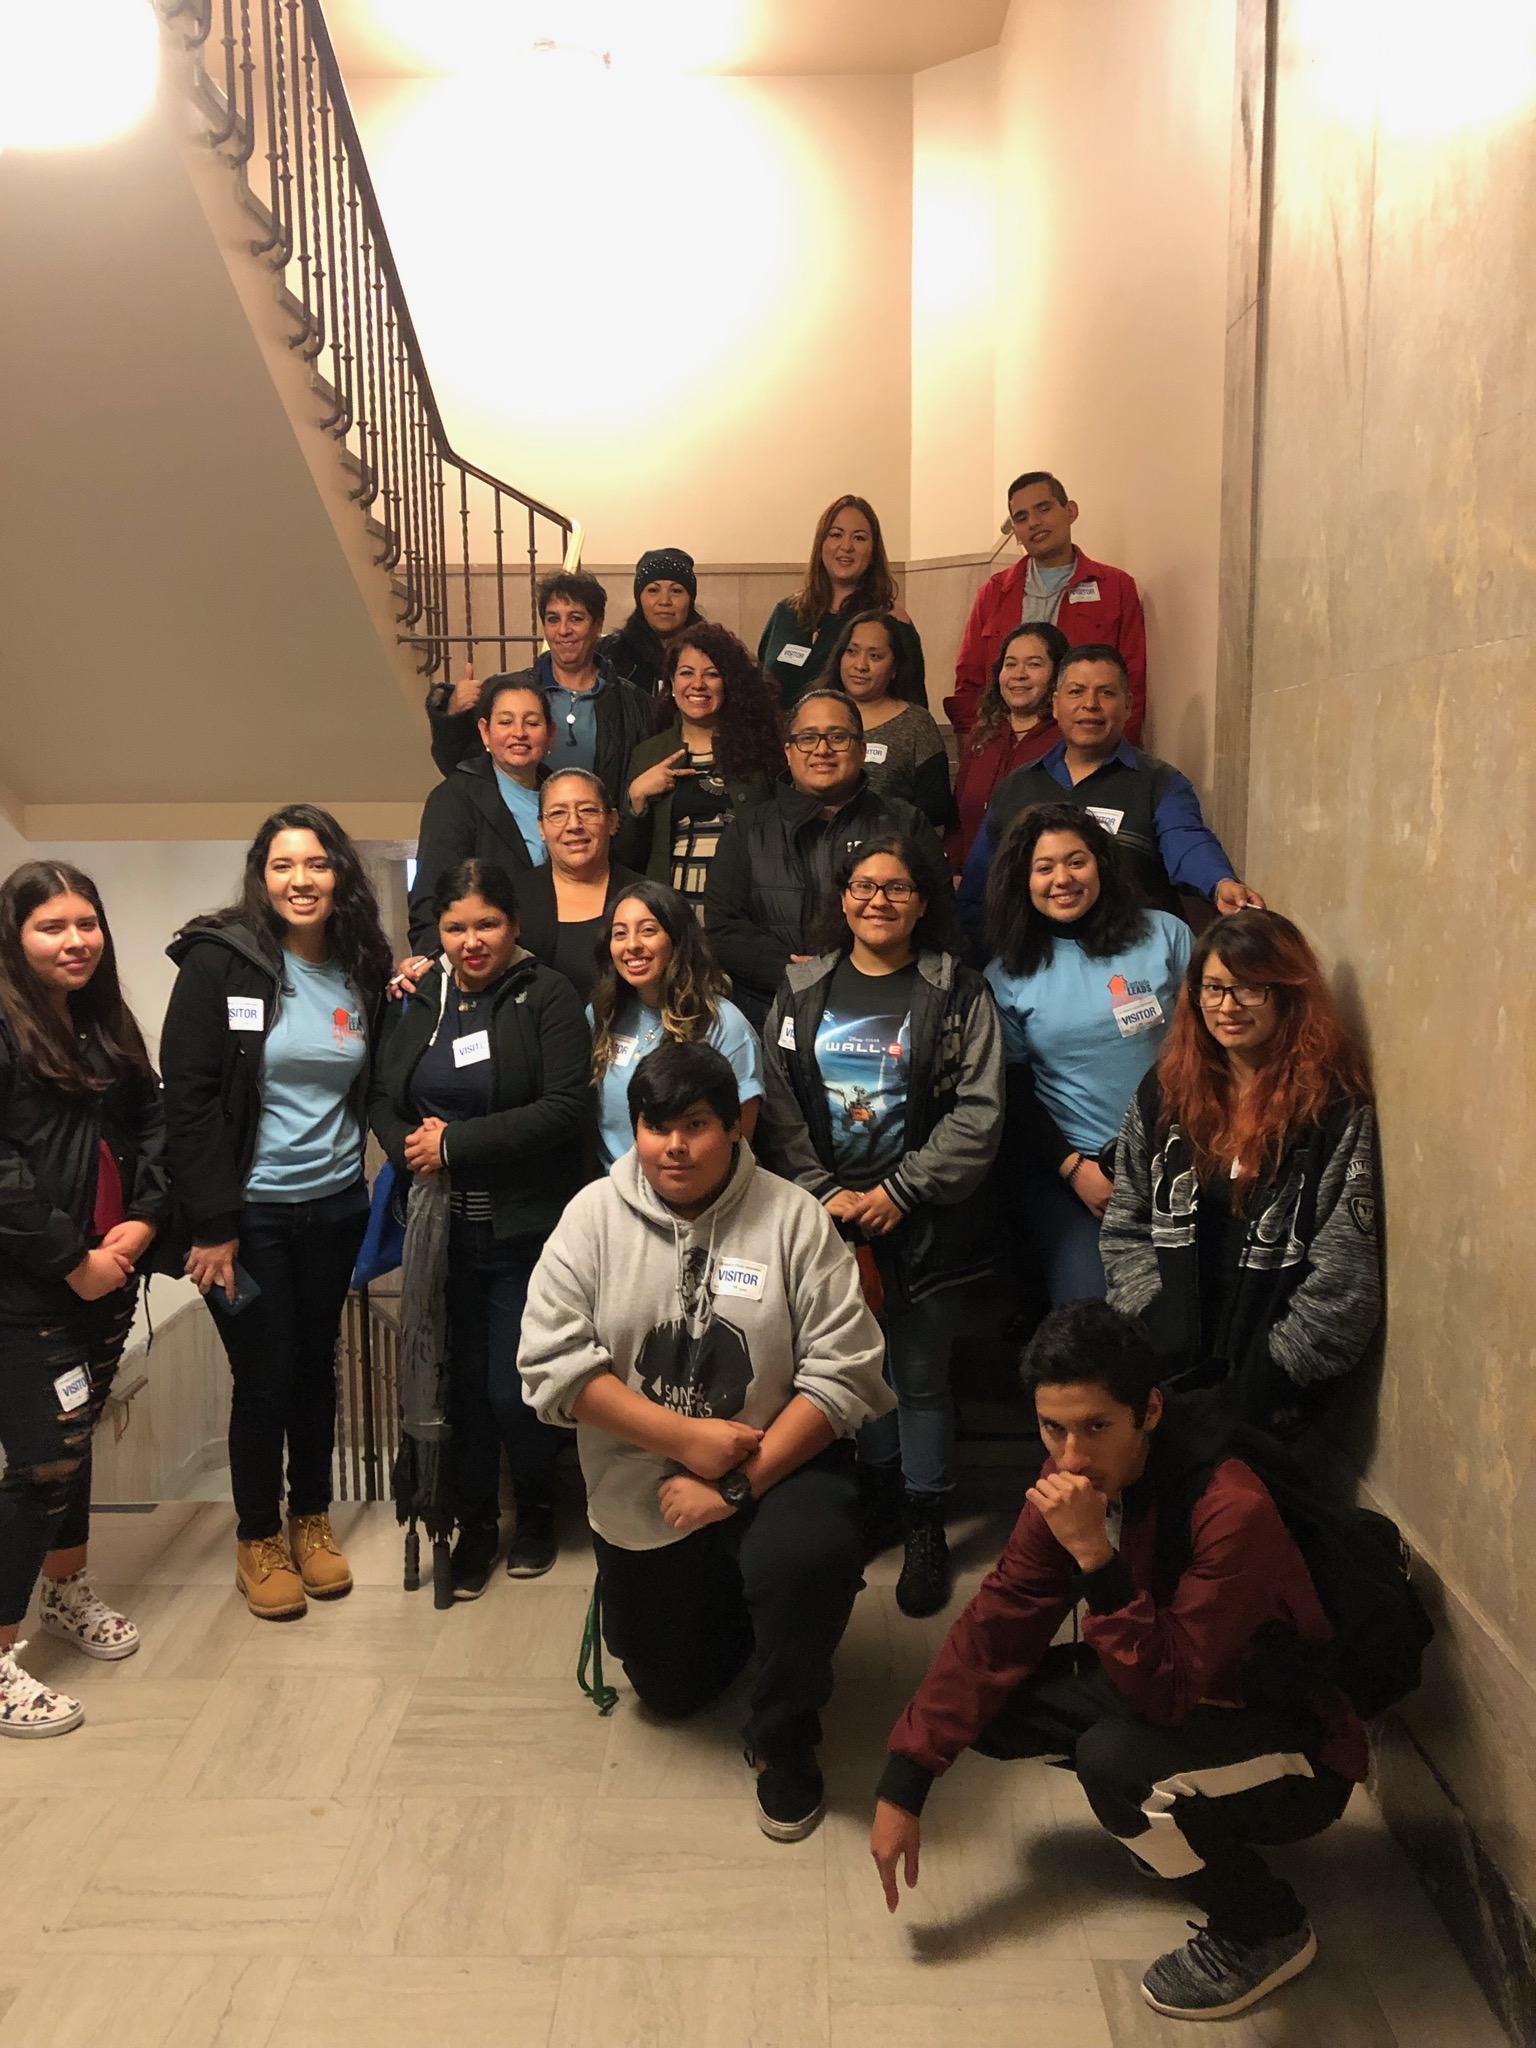 Eastside LEADS youth and parent leaders at LA City Hall on January 15, 2019.